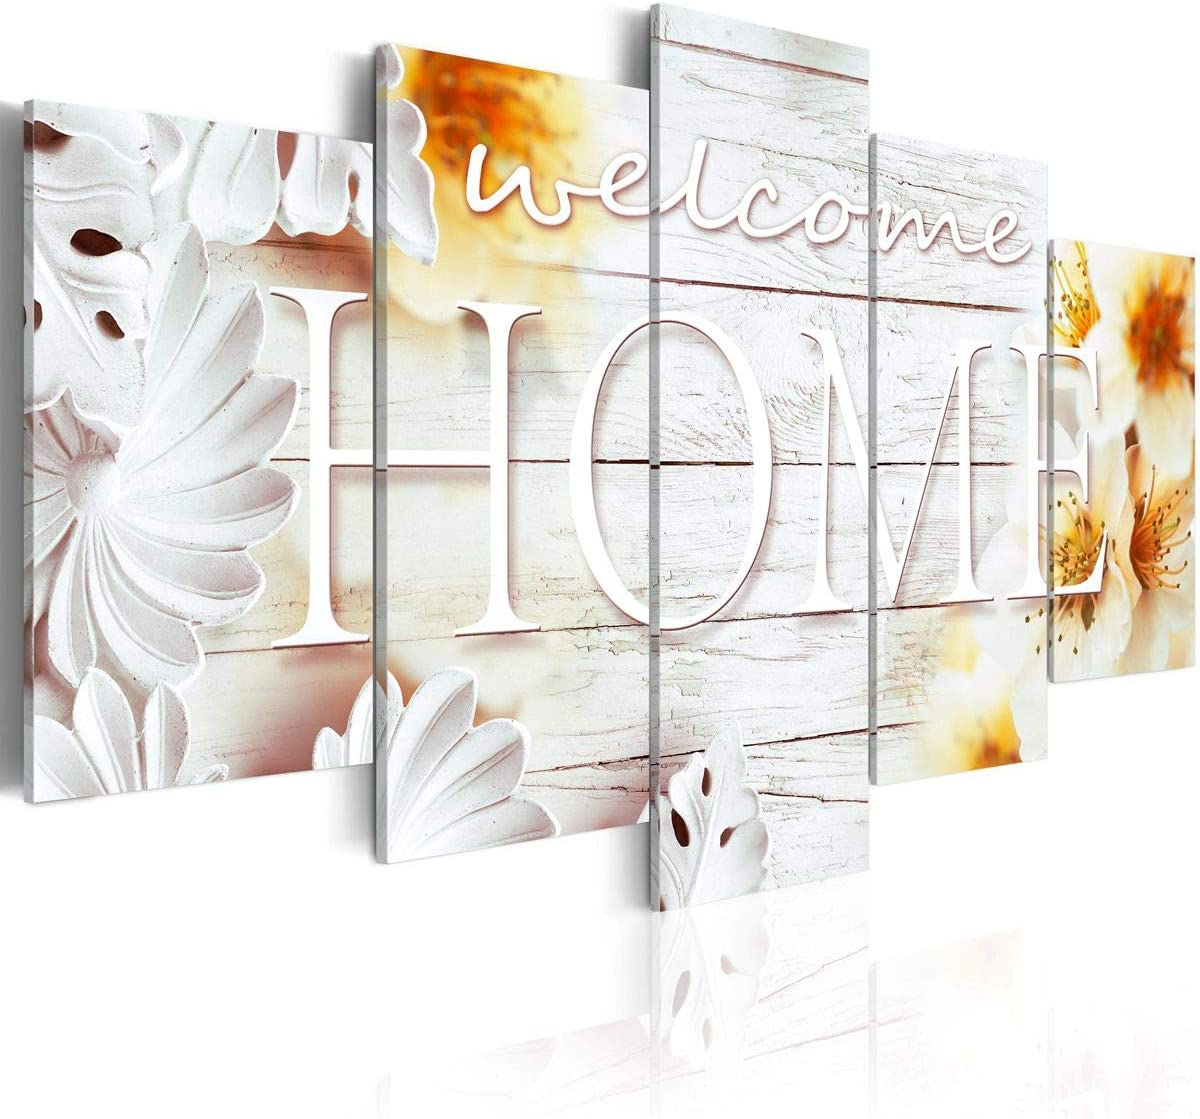 "Wall Art 5 Panels Welcome Home Sign Decor Golden Brown Modern Abstract Picture Canvas Flower Decoration Housewarming Living Room Print 40"" x 20"""